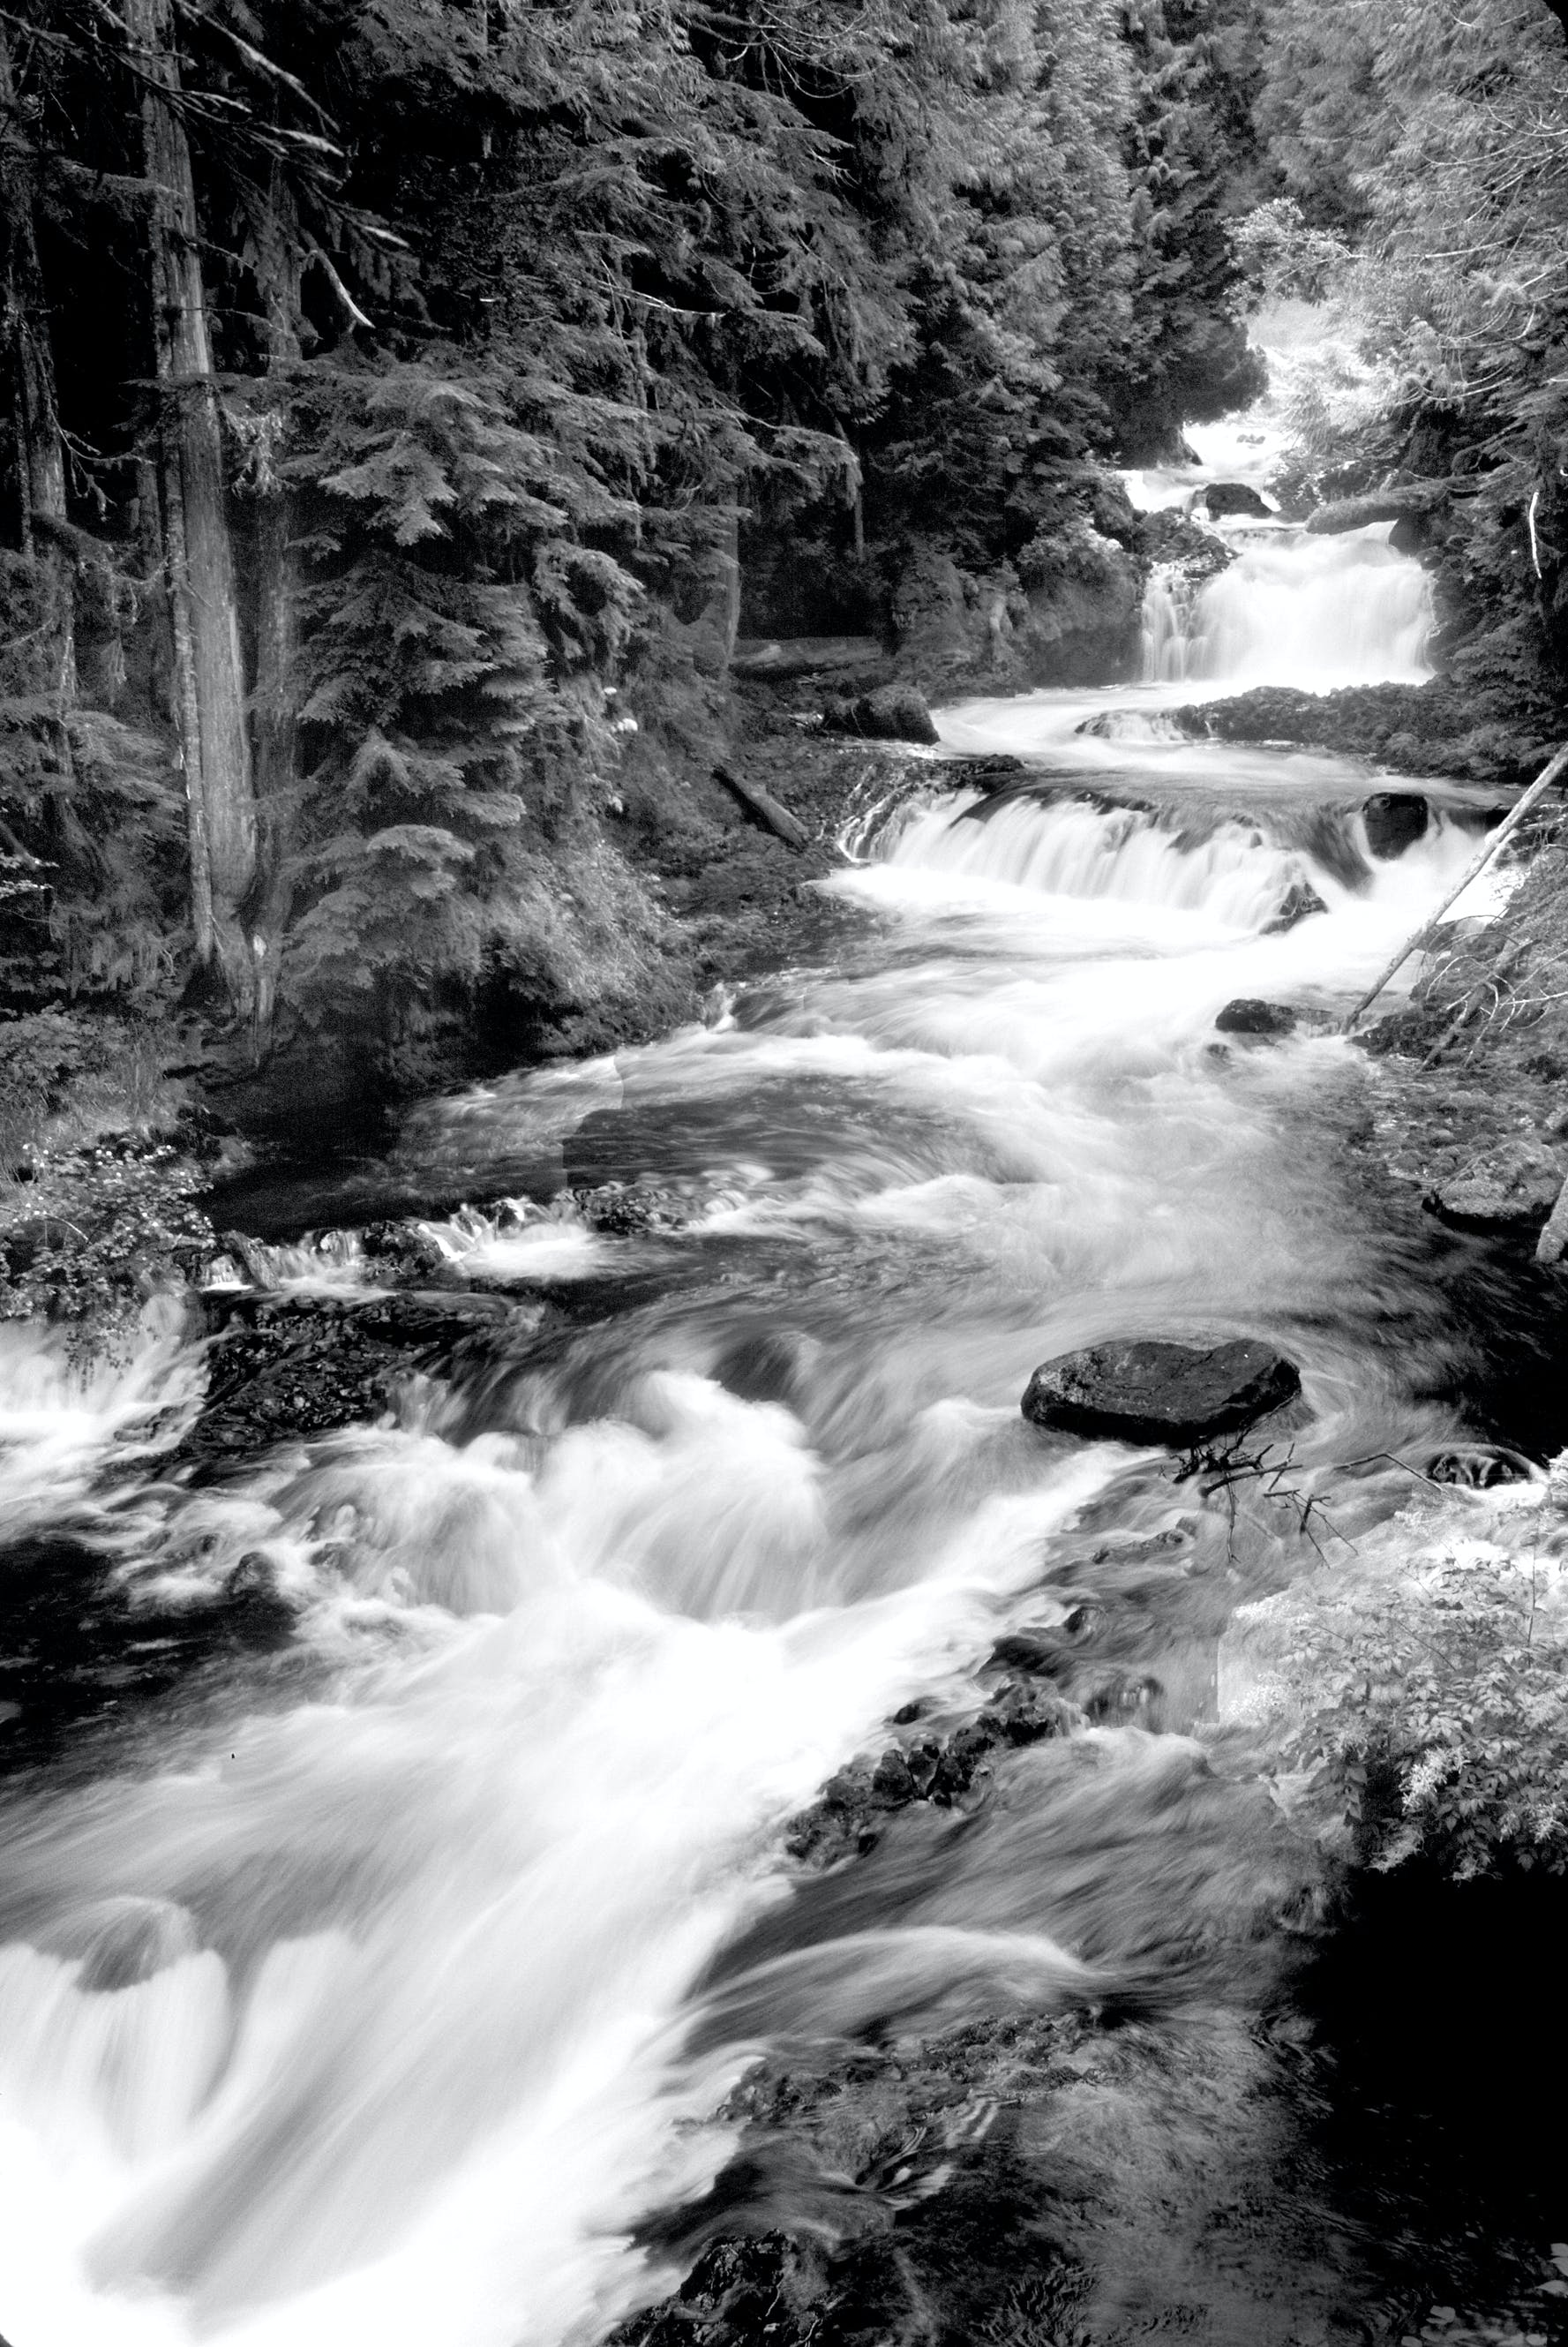 Grayscale Photography of Running River Surrounded Forest during Daytime